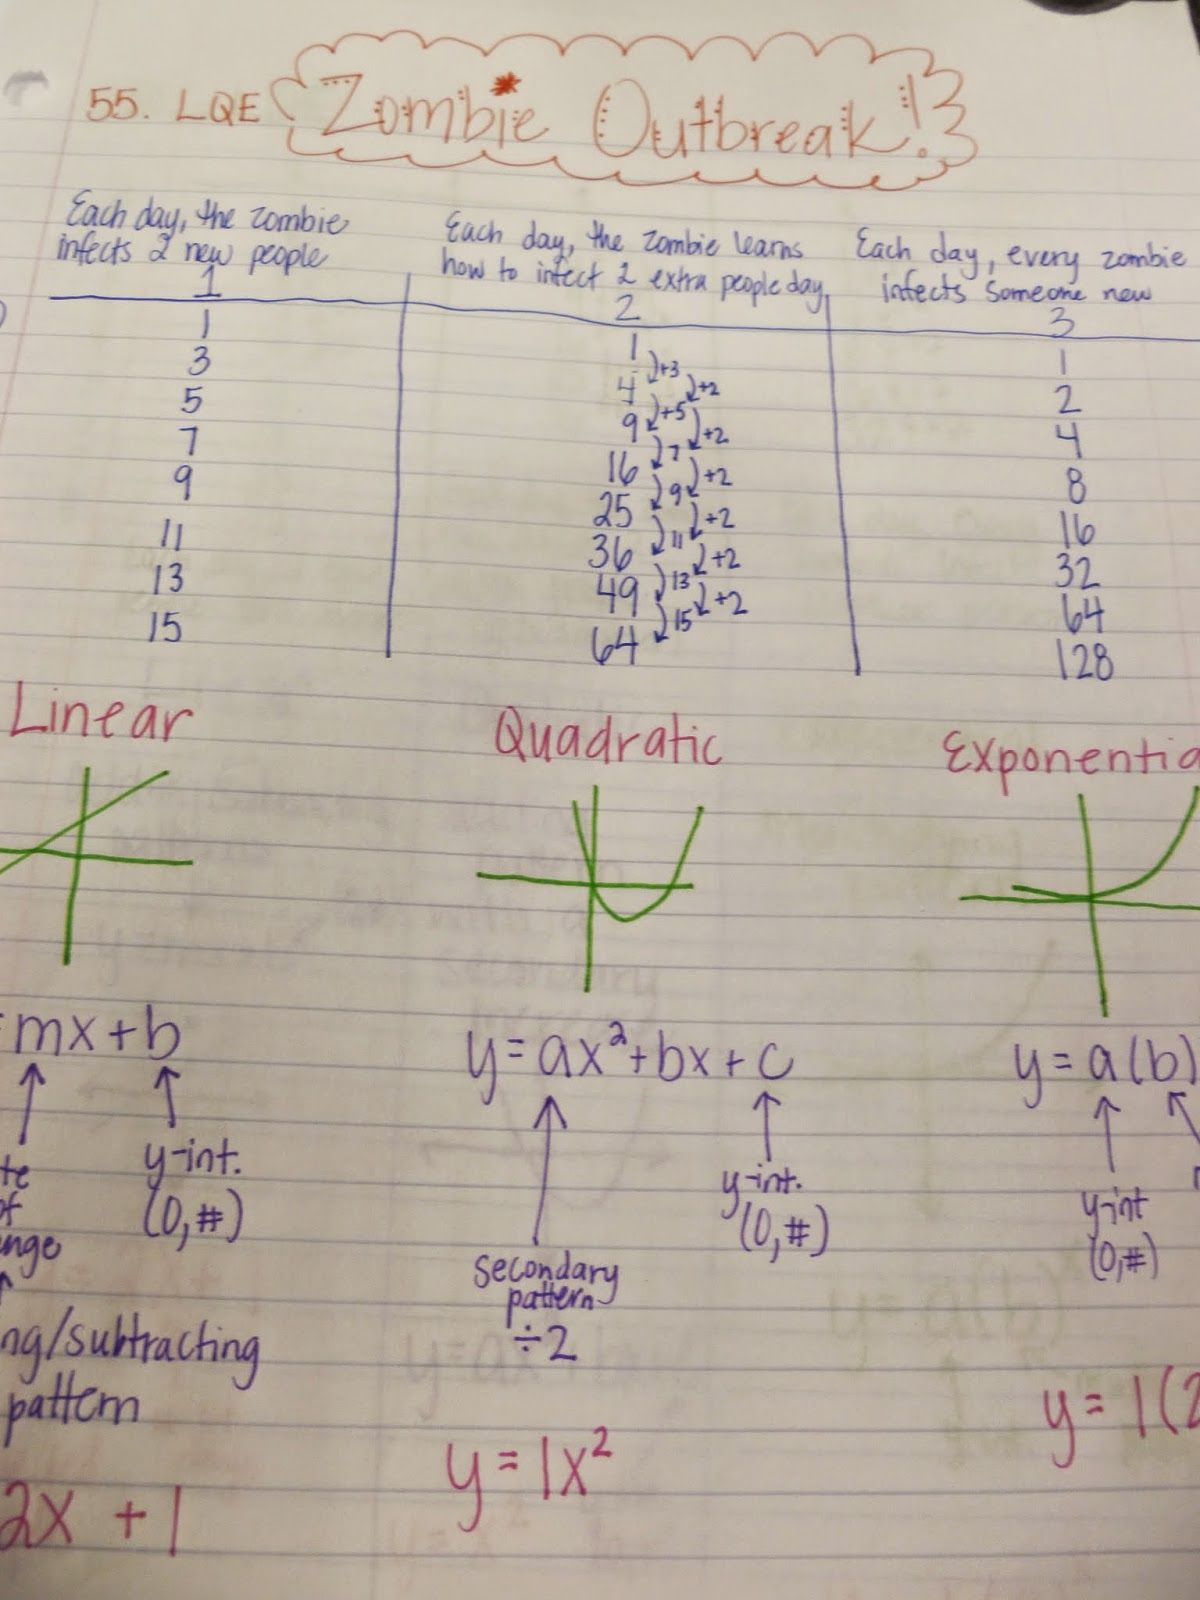 worksheet Exponential Functions Worksheet Algebra 1 learning with tape friday freebies comparing linearquadratic linearquadraticexponential functions algebra 2 interactive notebook pinterest quadratic